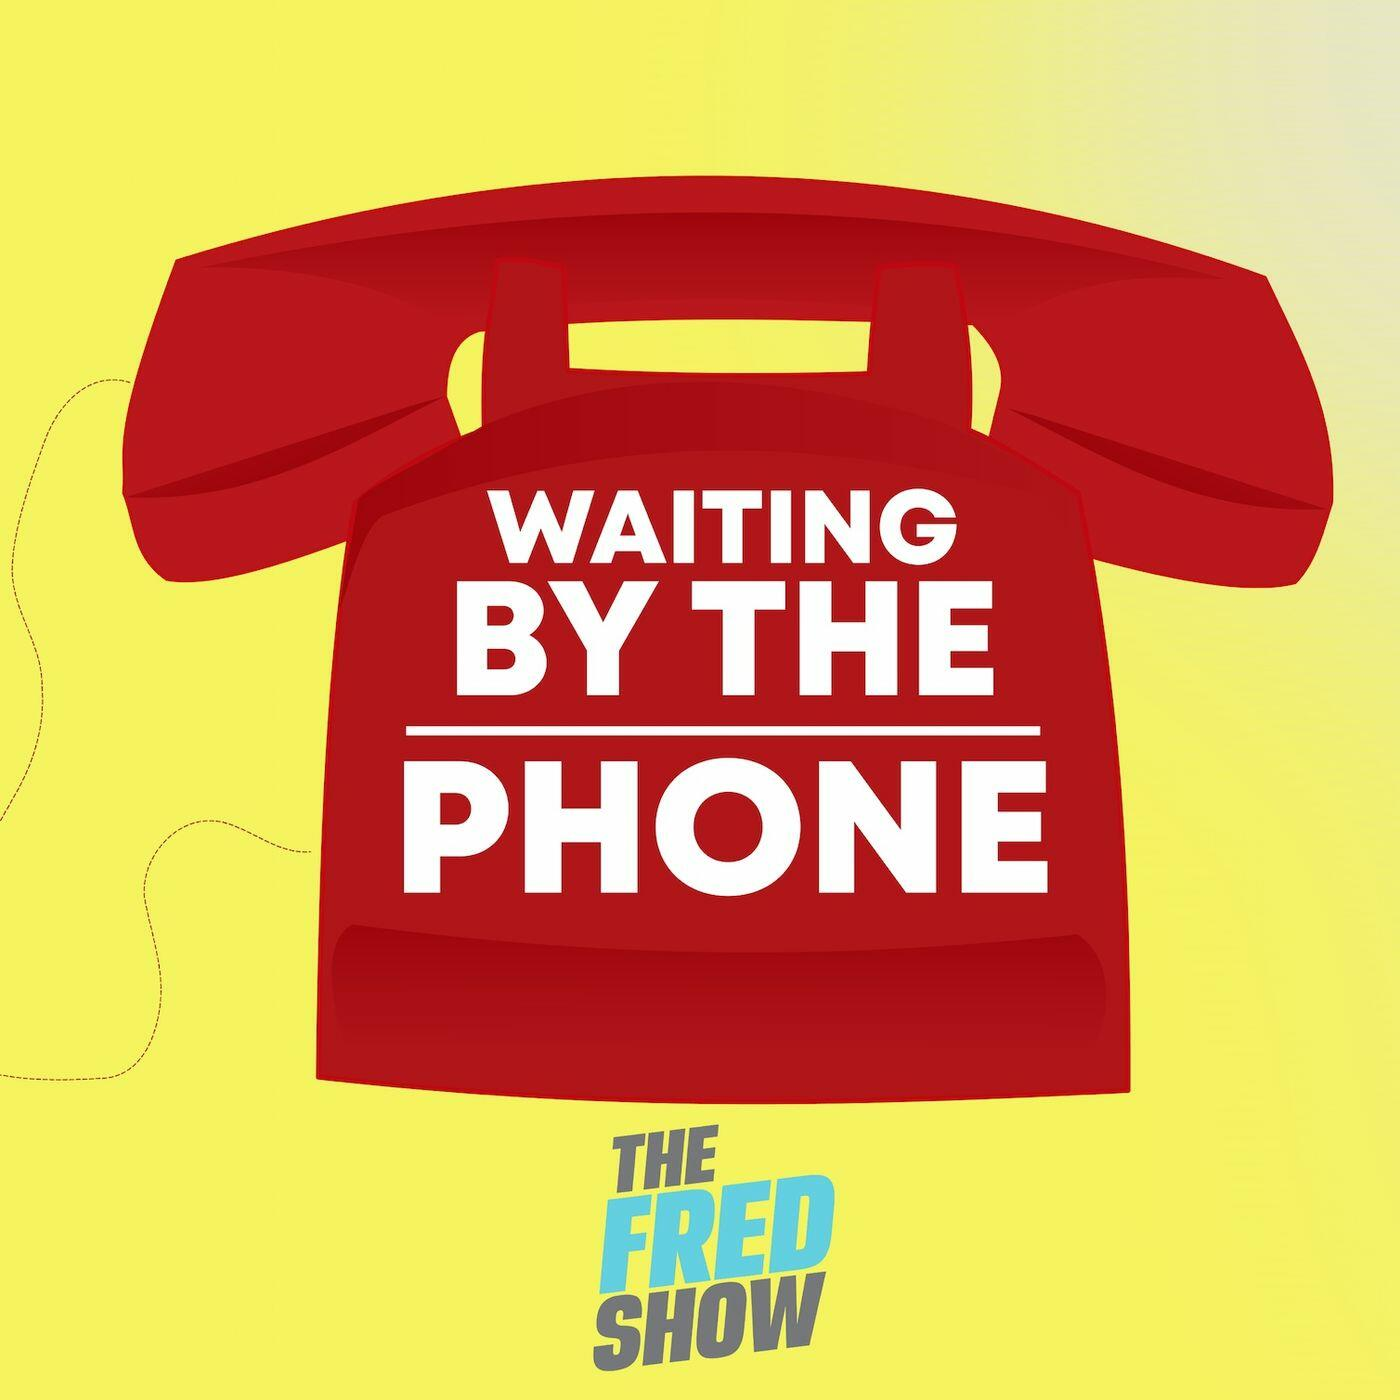 The Fred Show Waiting By The Phone